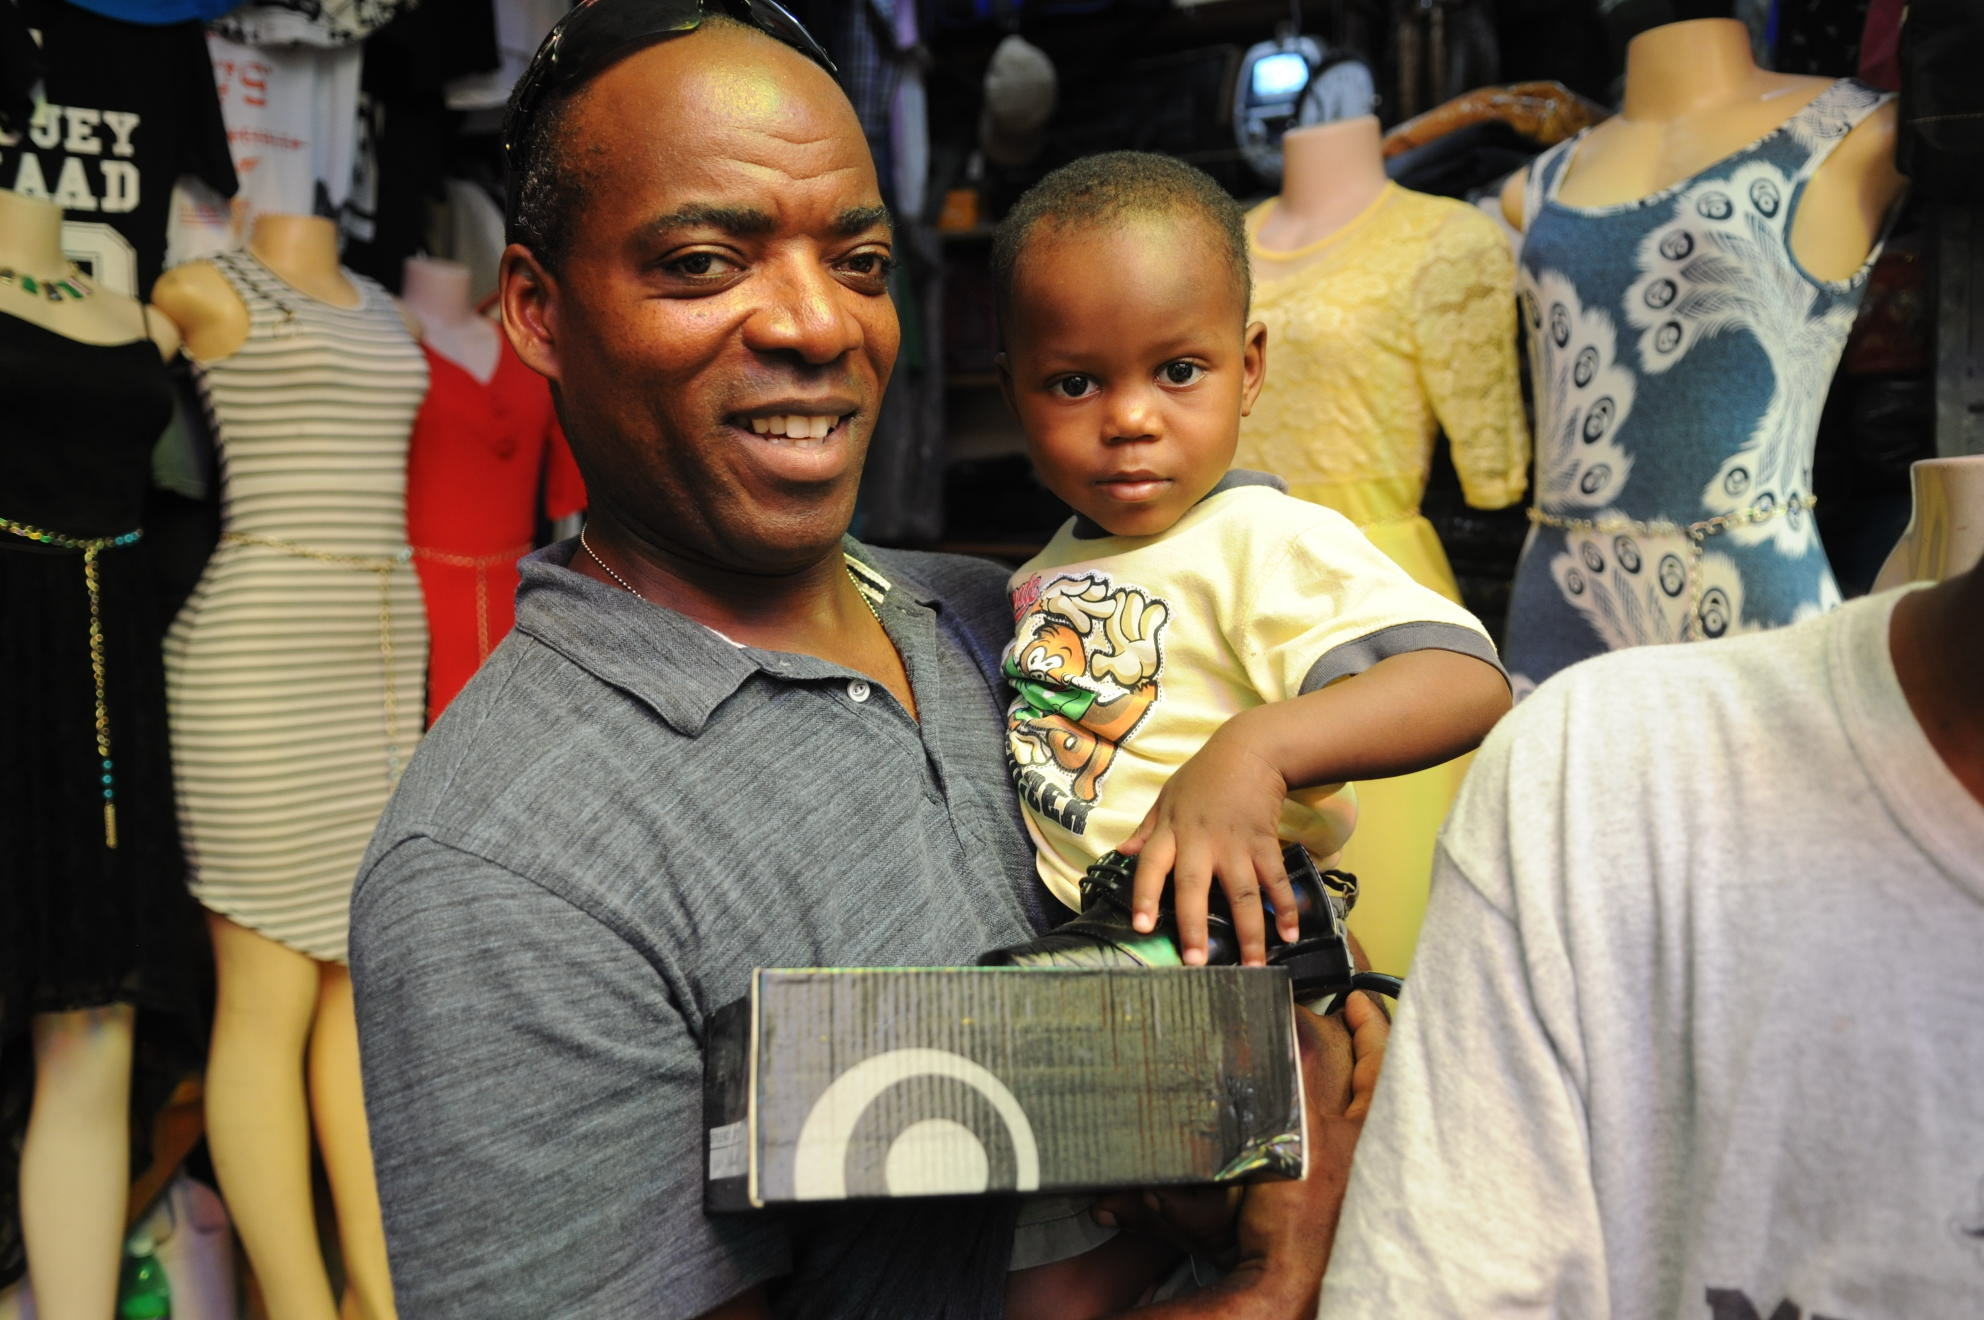 A man holds a toddler. Both pose for the camera.